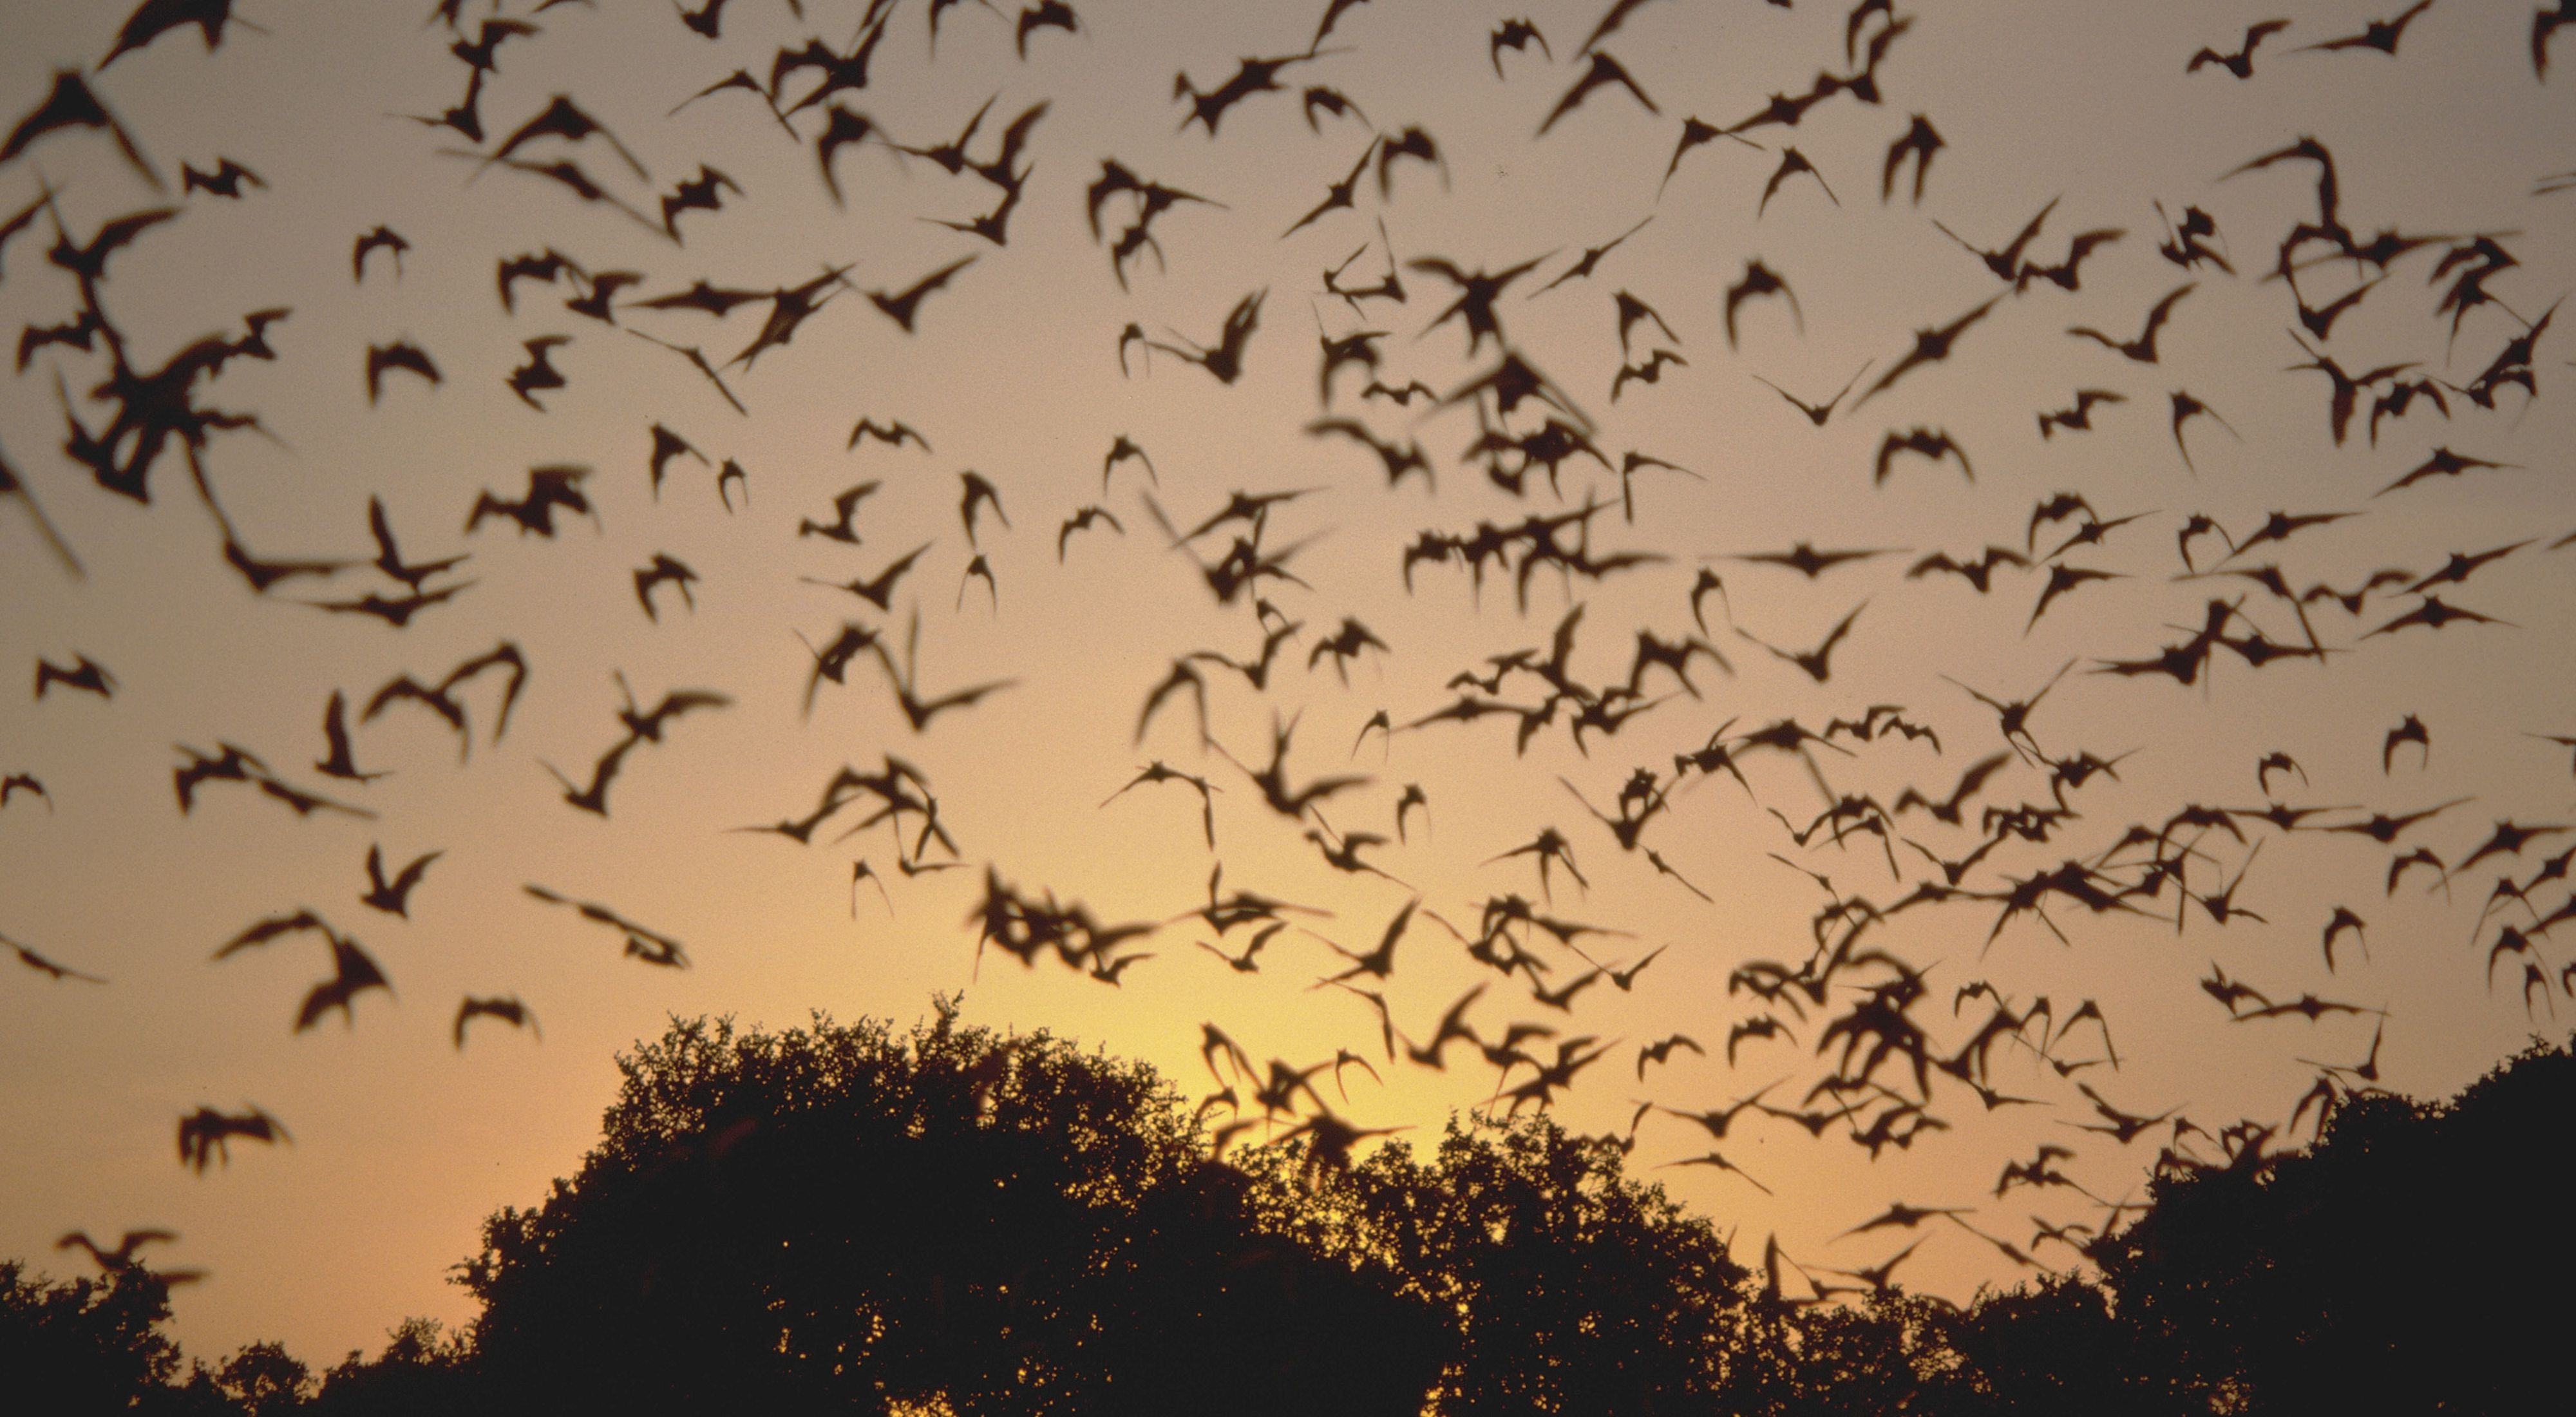 Hundreds of bats are silhouetted against a sundown sky as they fly from the roost.